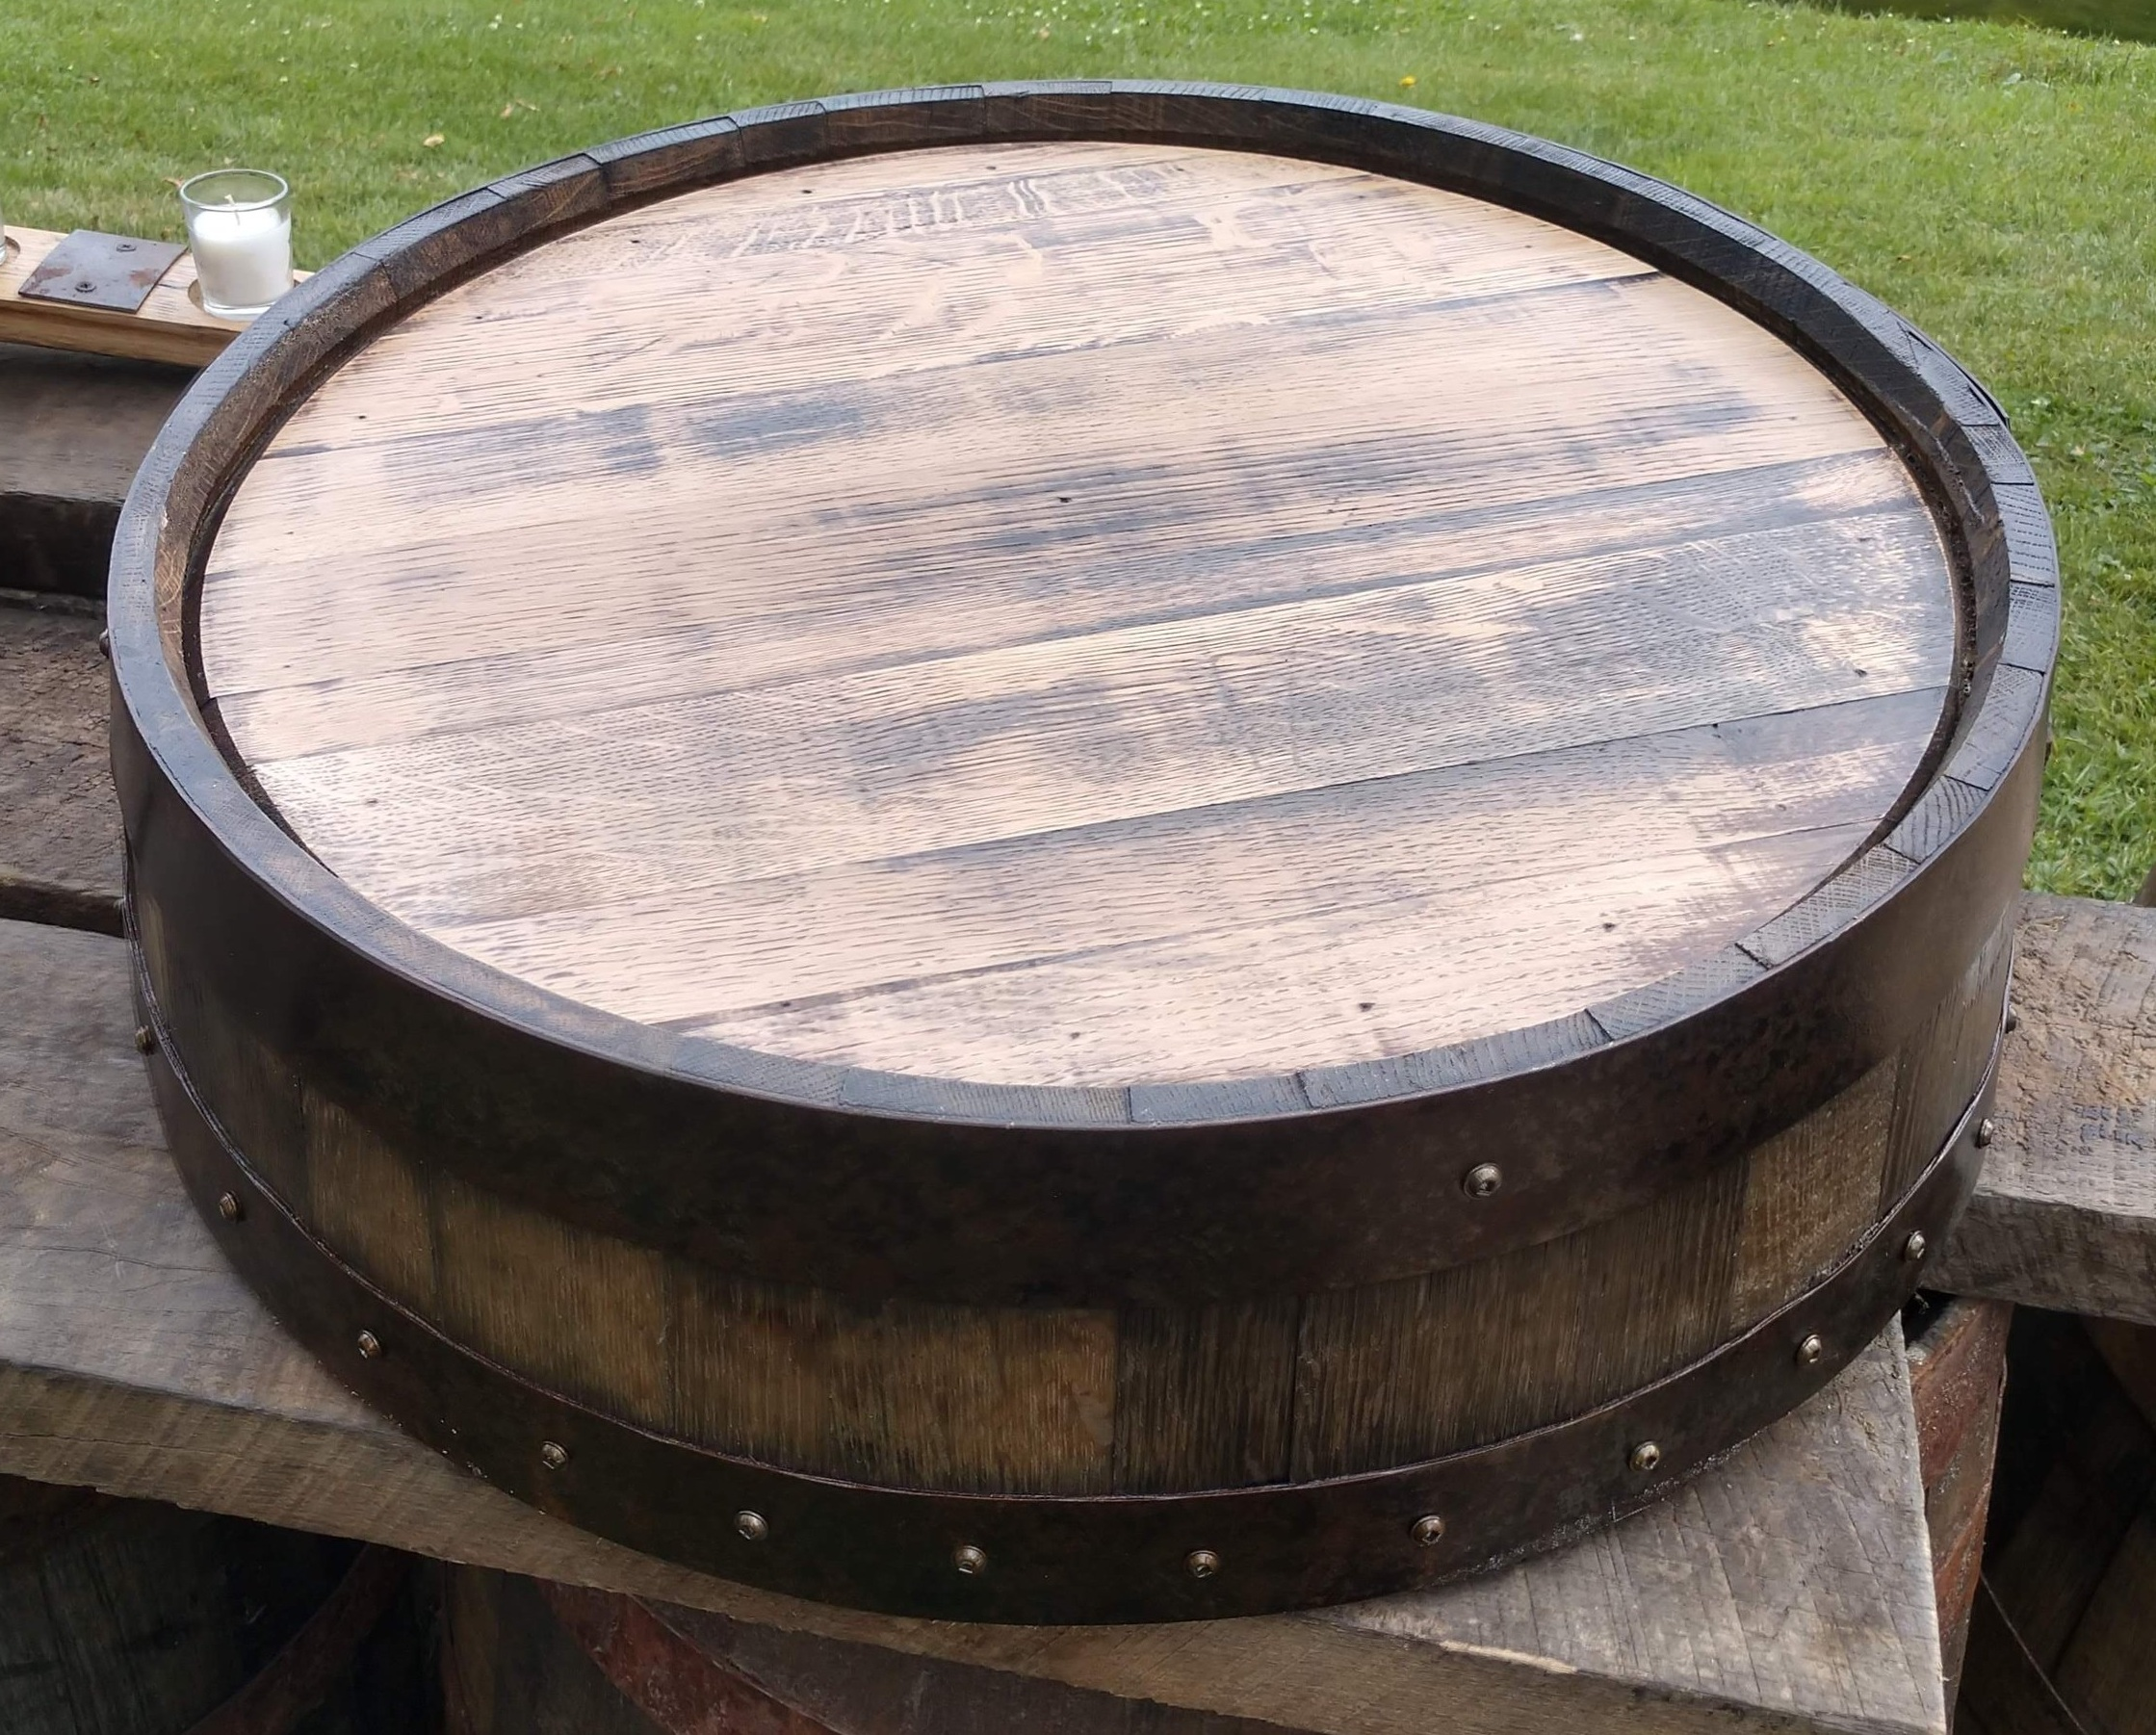 "Large Whiskey Barrel Cake Stand - Keep the theme going with a whiskey barrel cake stand! The stand has an inner diameter of 21"" and stands at about 6"" tall.Rental for this item is $20eaInterested in purchasing this item? Follow this link to purchase instead of rent!"